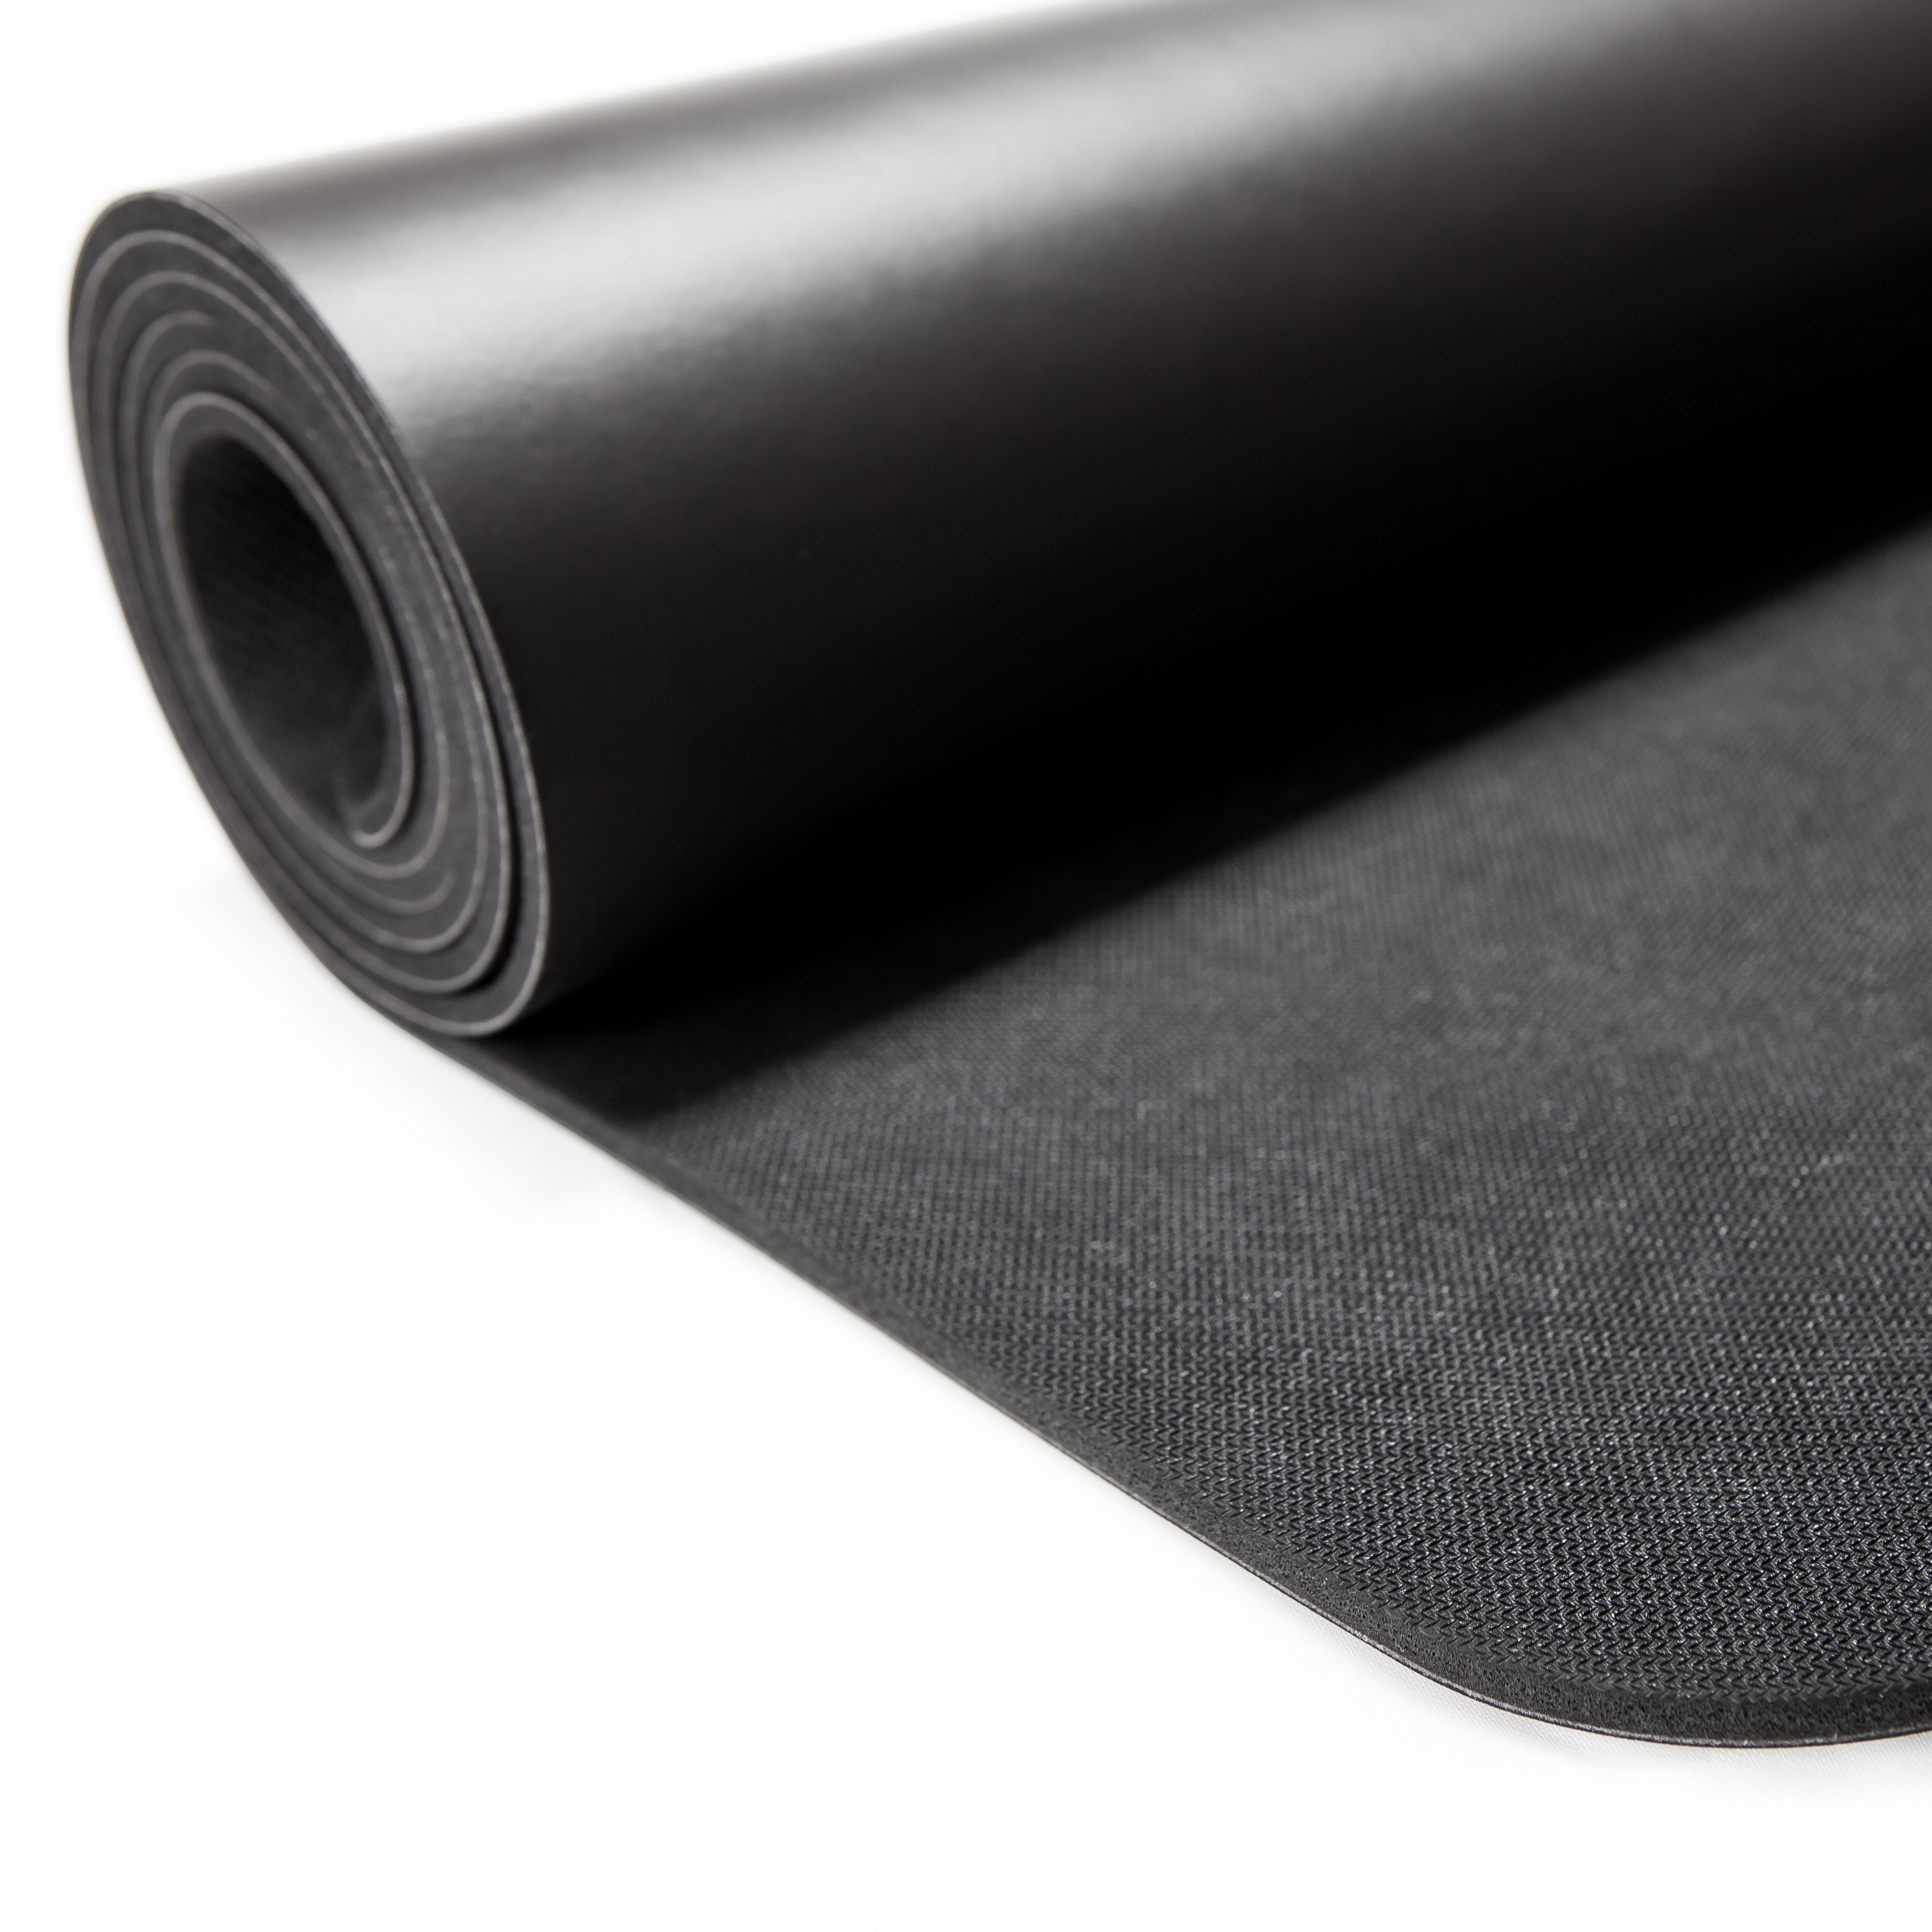 The Mocana Reach | Extra Length Performance Yoga Mat